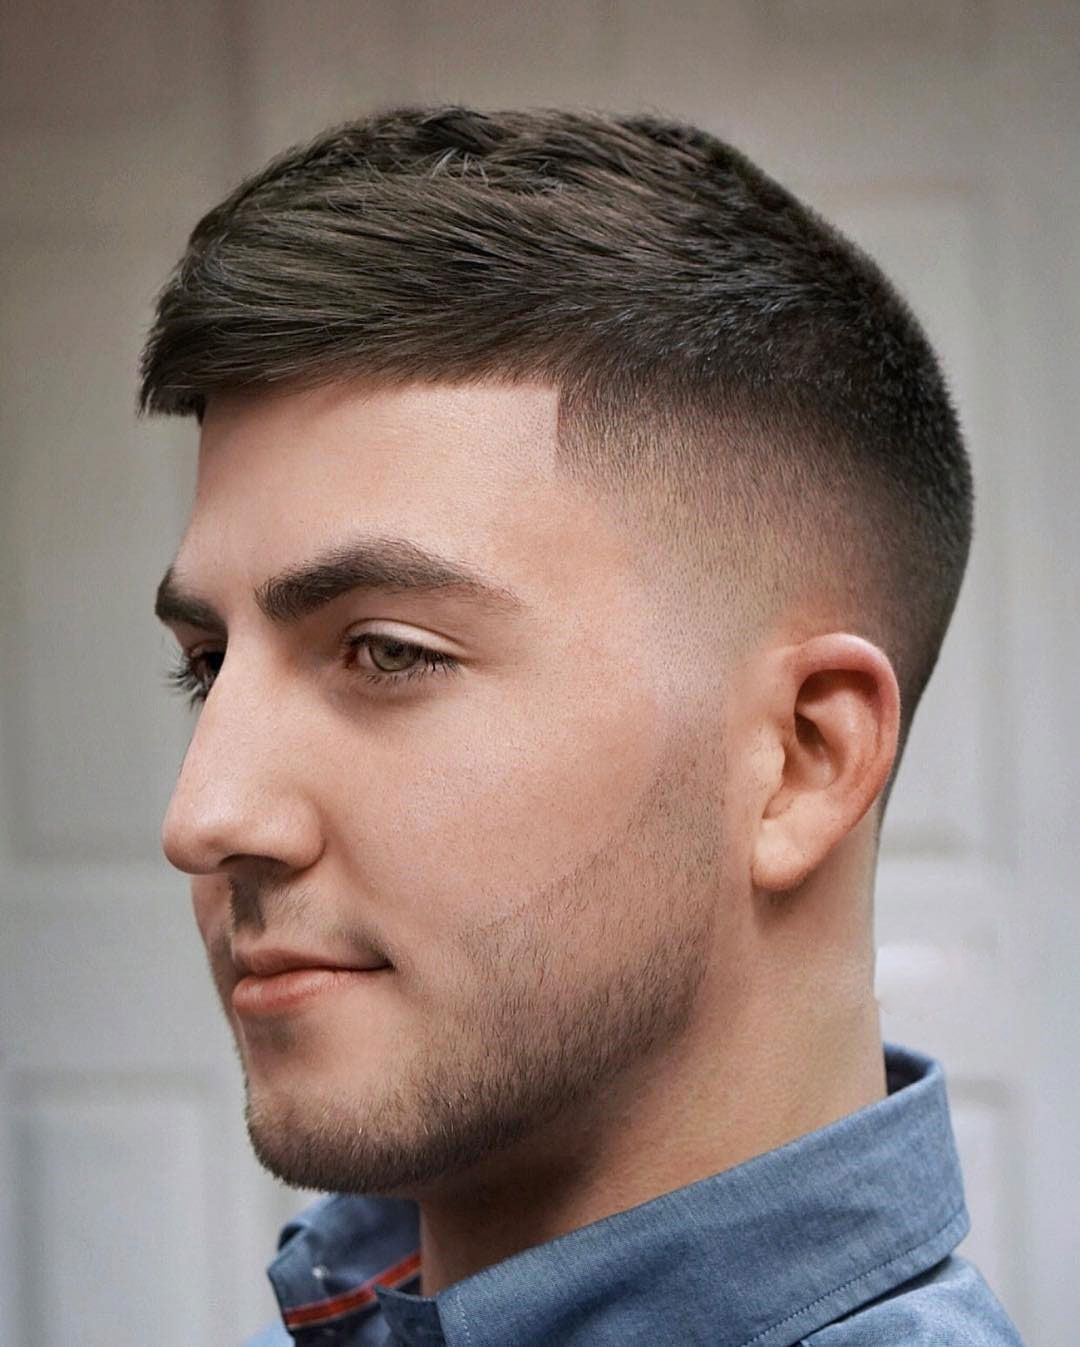 35 Best Men's Fade Haircuts: The Different Types of Fades (2019